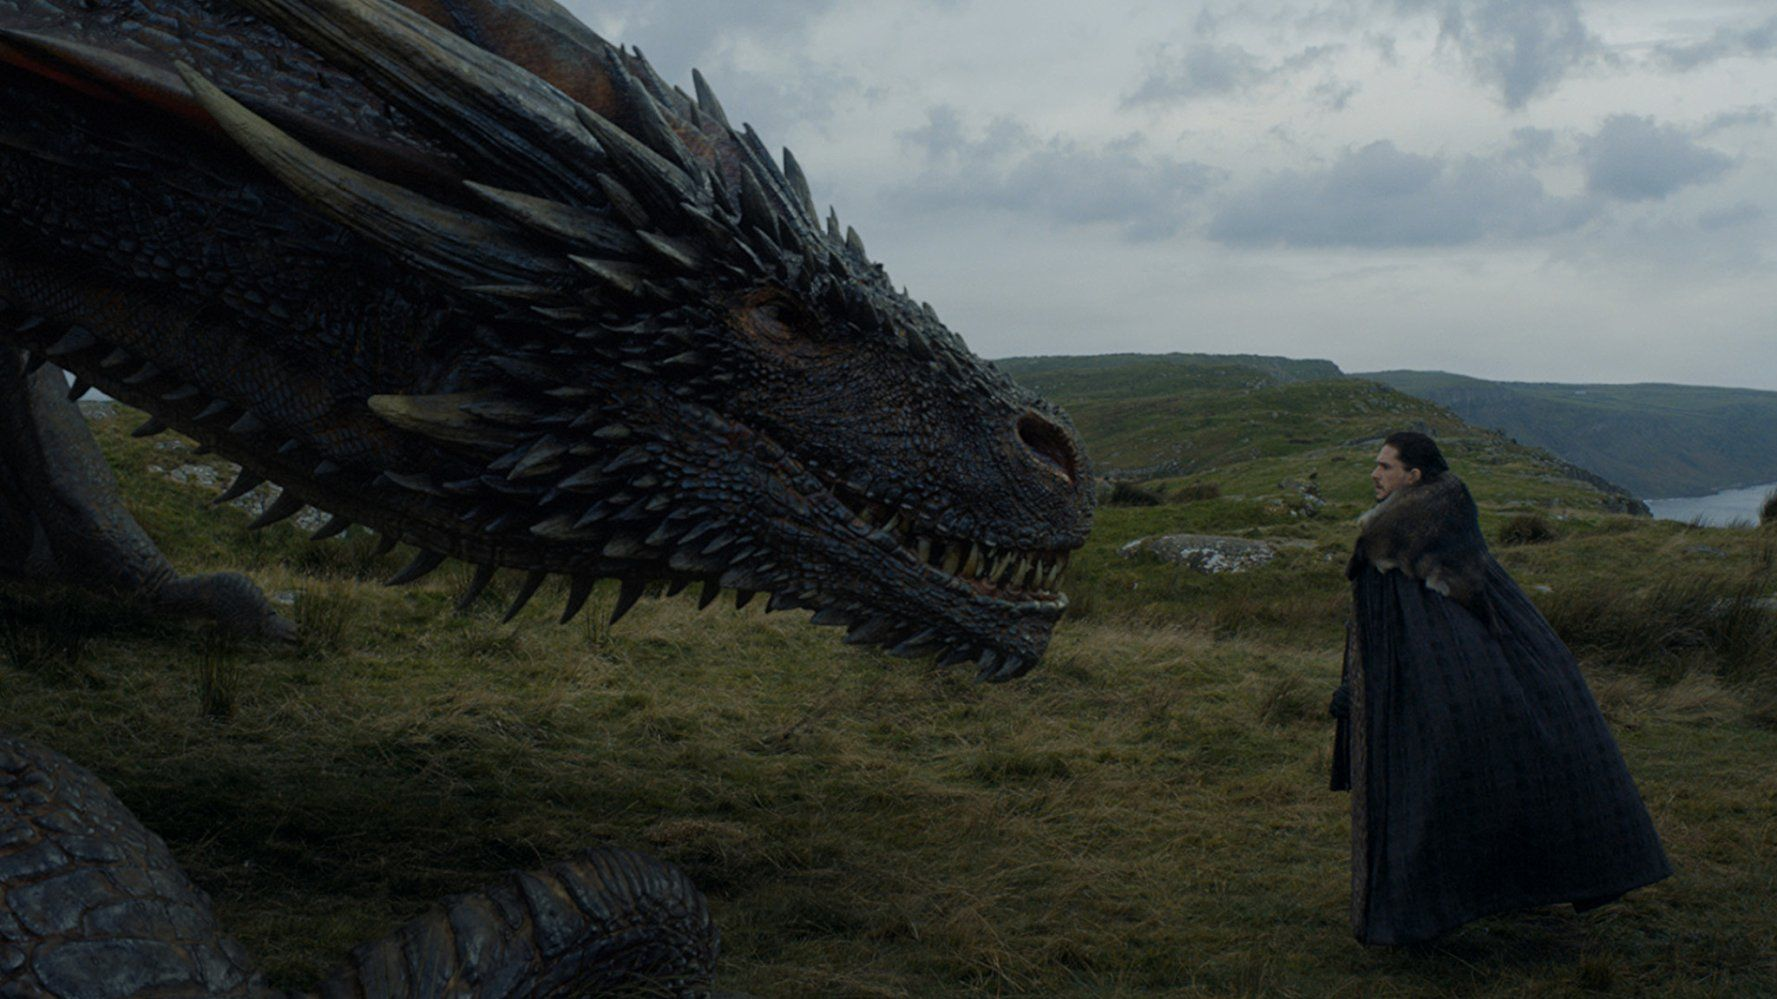 Game Of Thrones Season 7 Photos A Dance With Dragons King In The North Game Of Thrones Locations